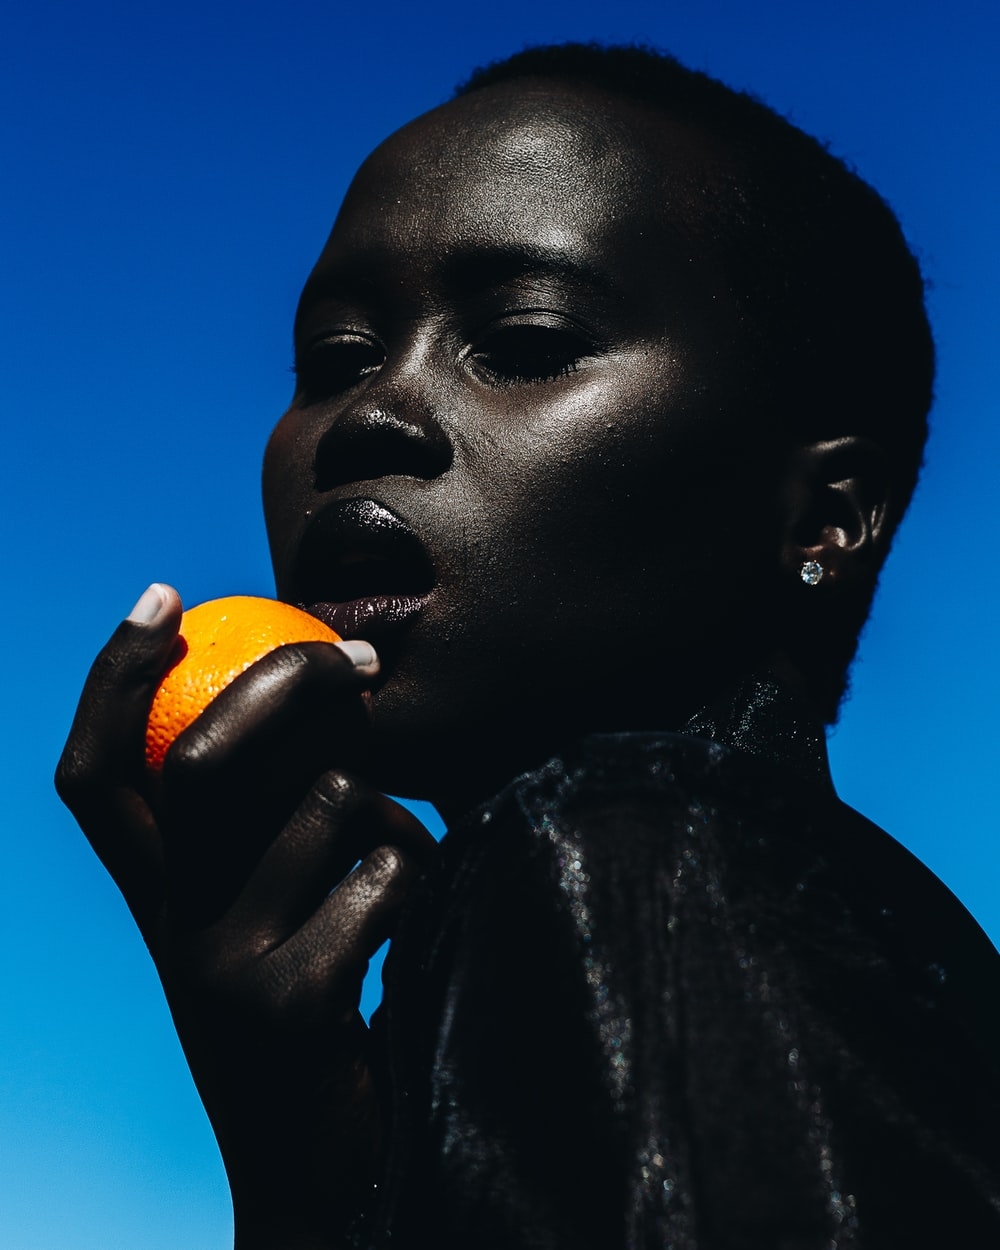 woman holding citrus fruit